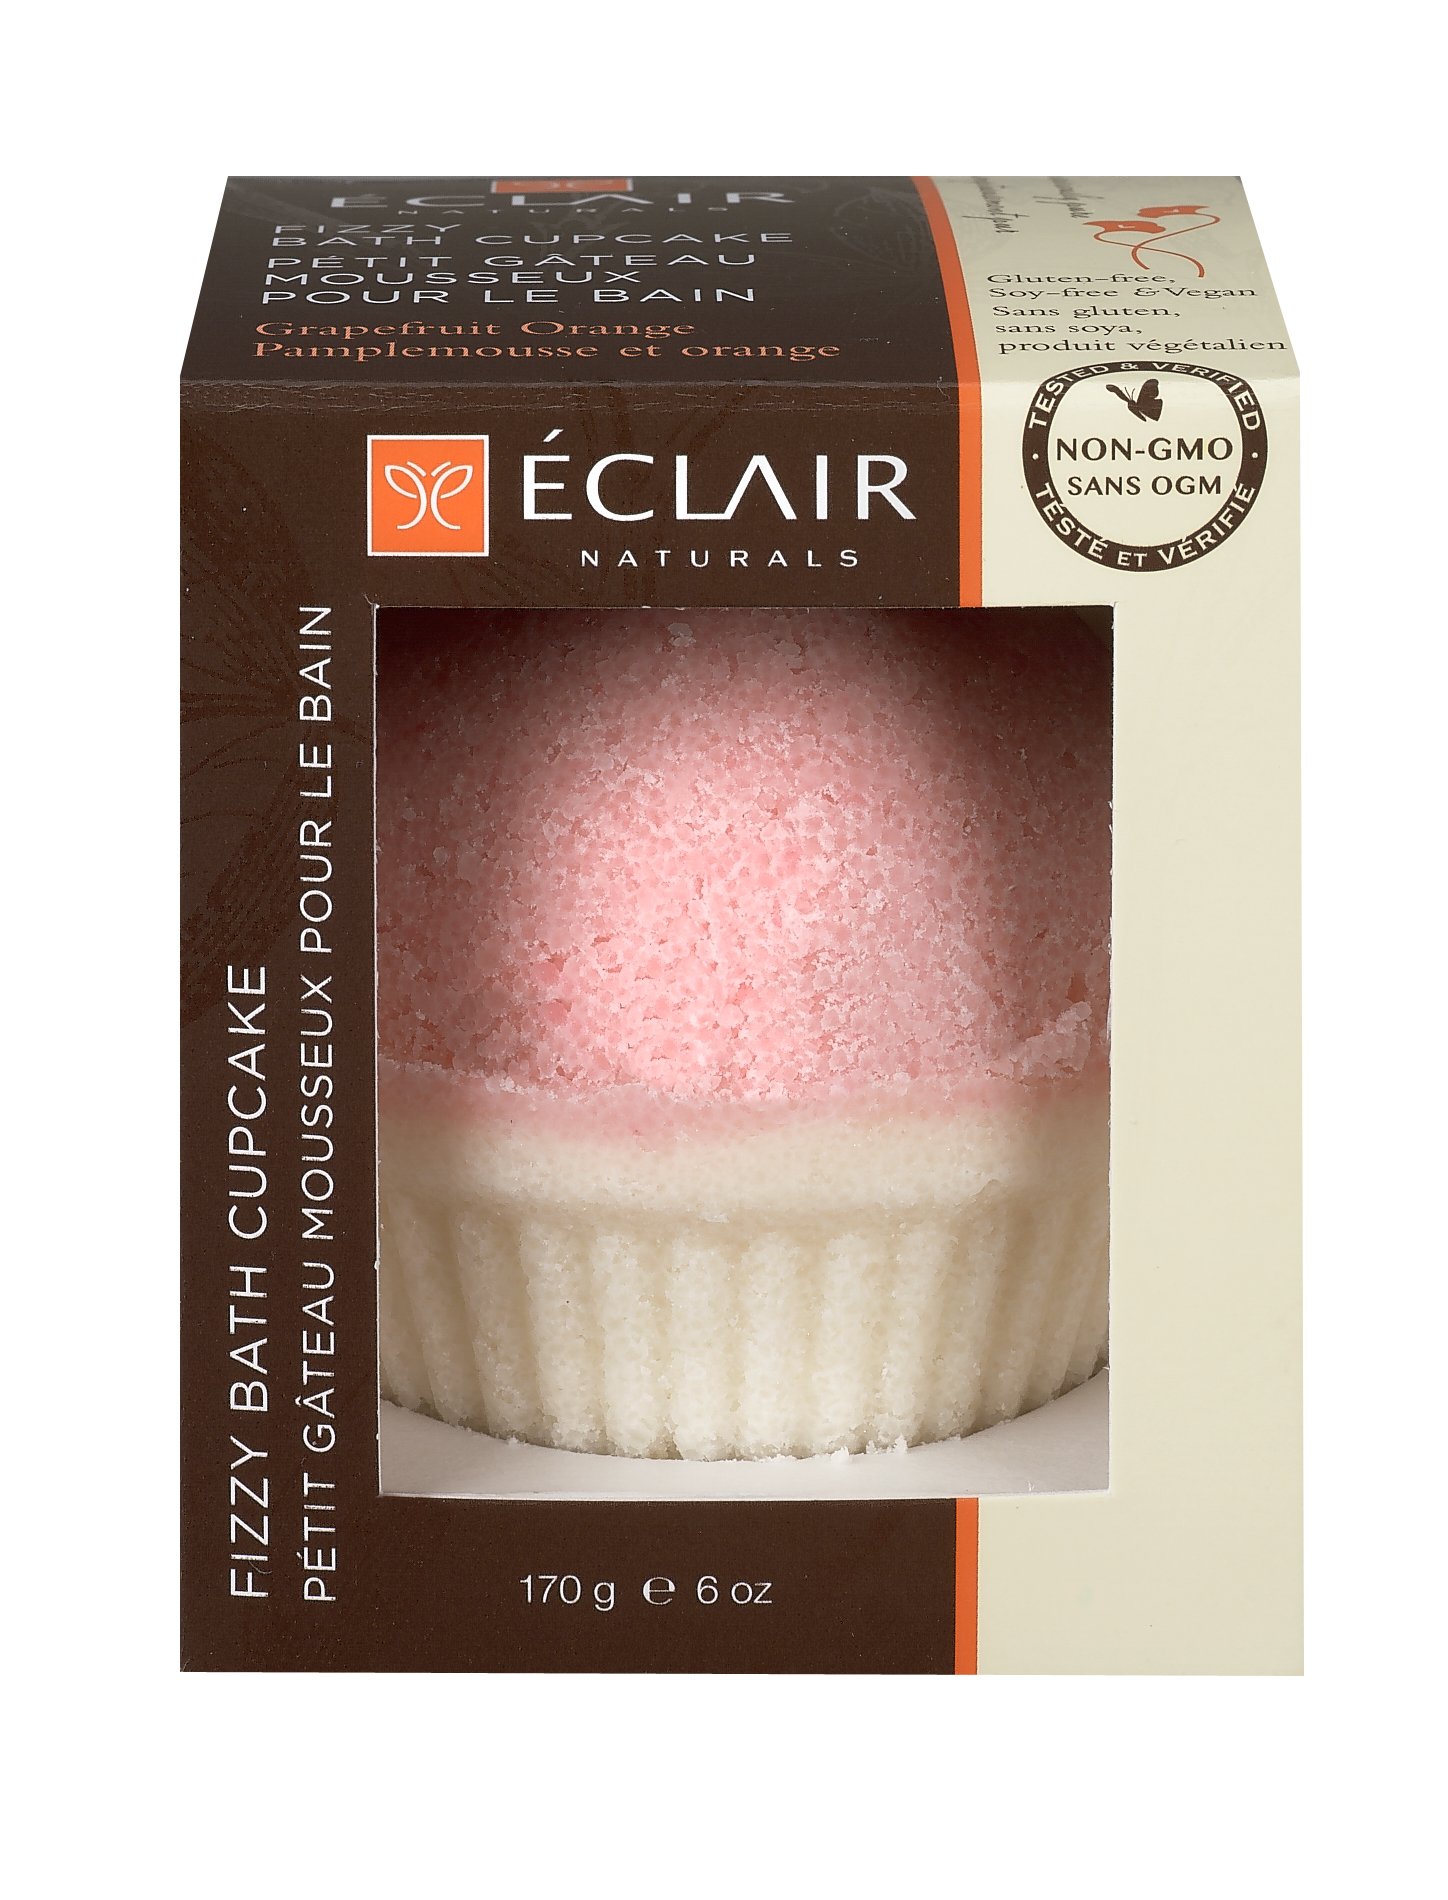 Eclair Naturals Fizzy Bath Cupcake - Grapefruit Orange